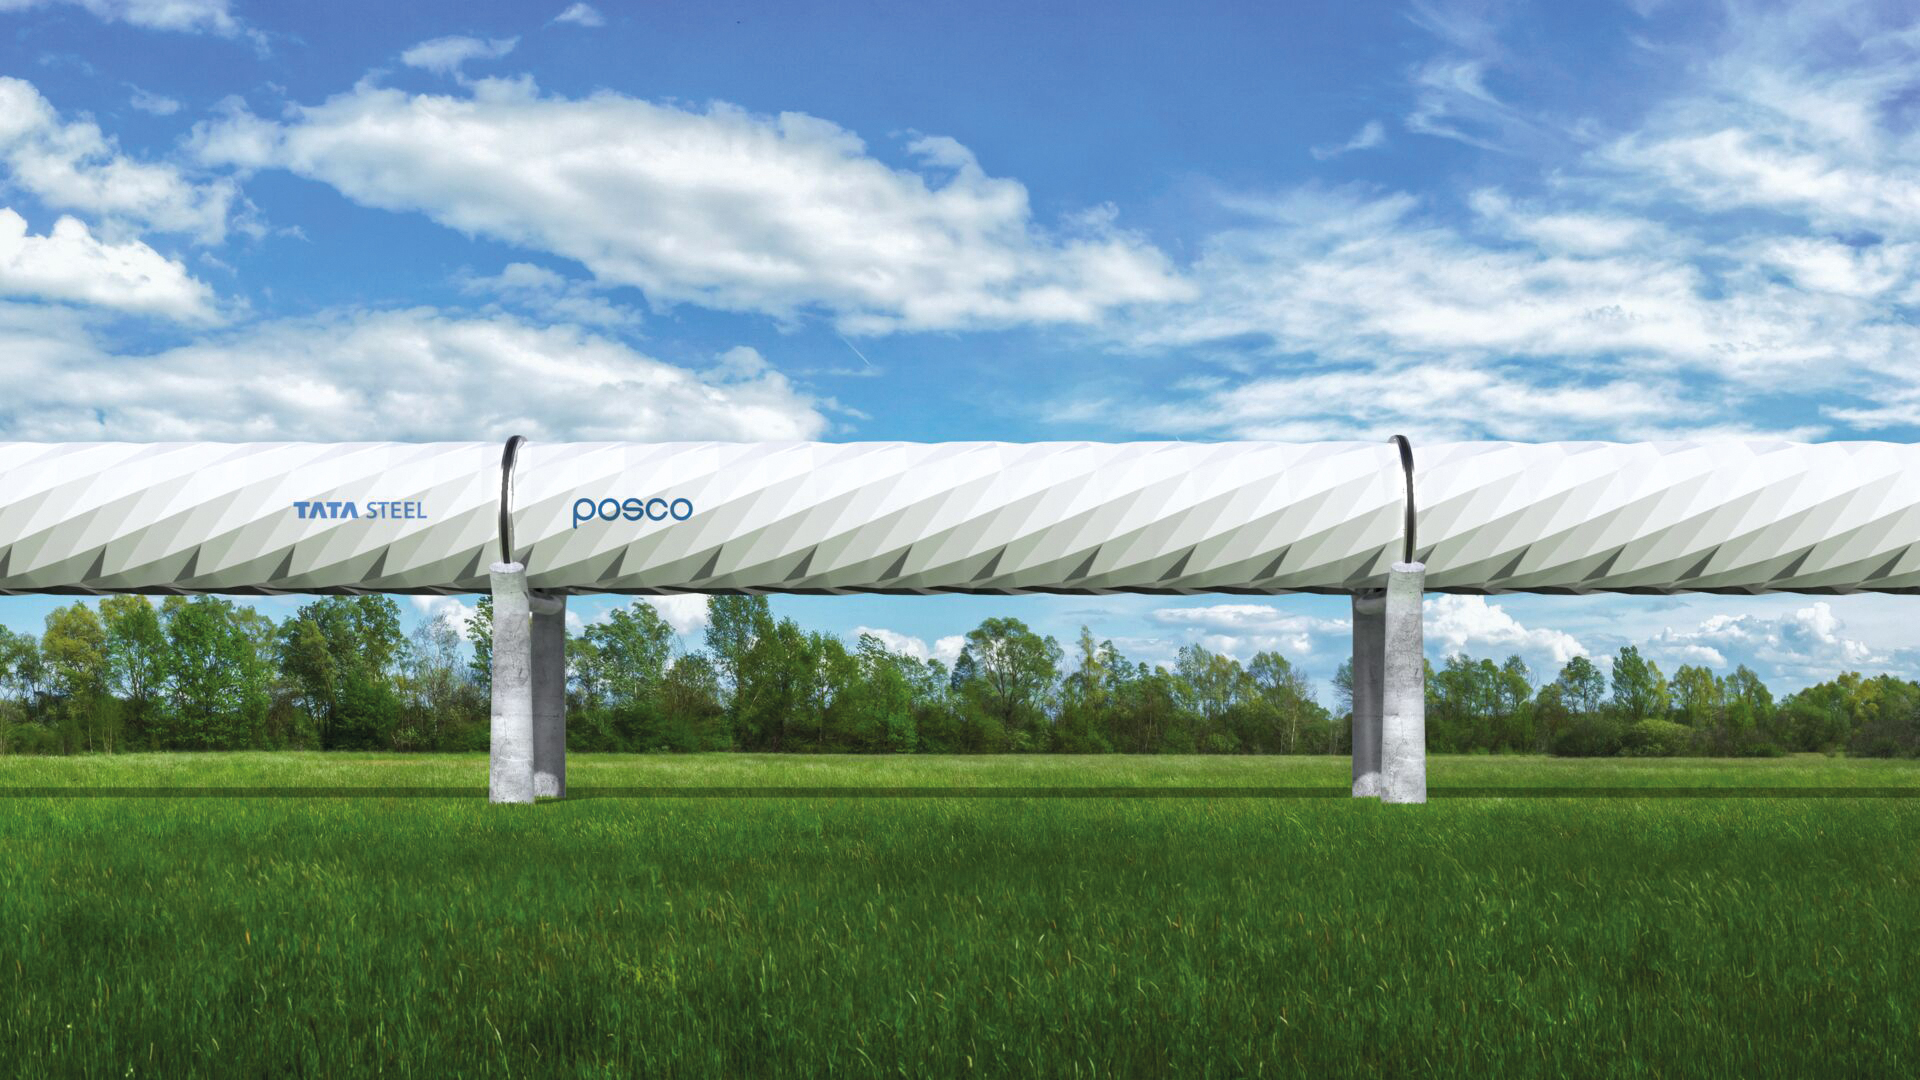 Tata Steel and POSCO join forces to develop innovative high-speed travel of the future